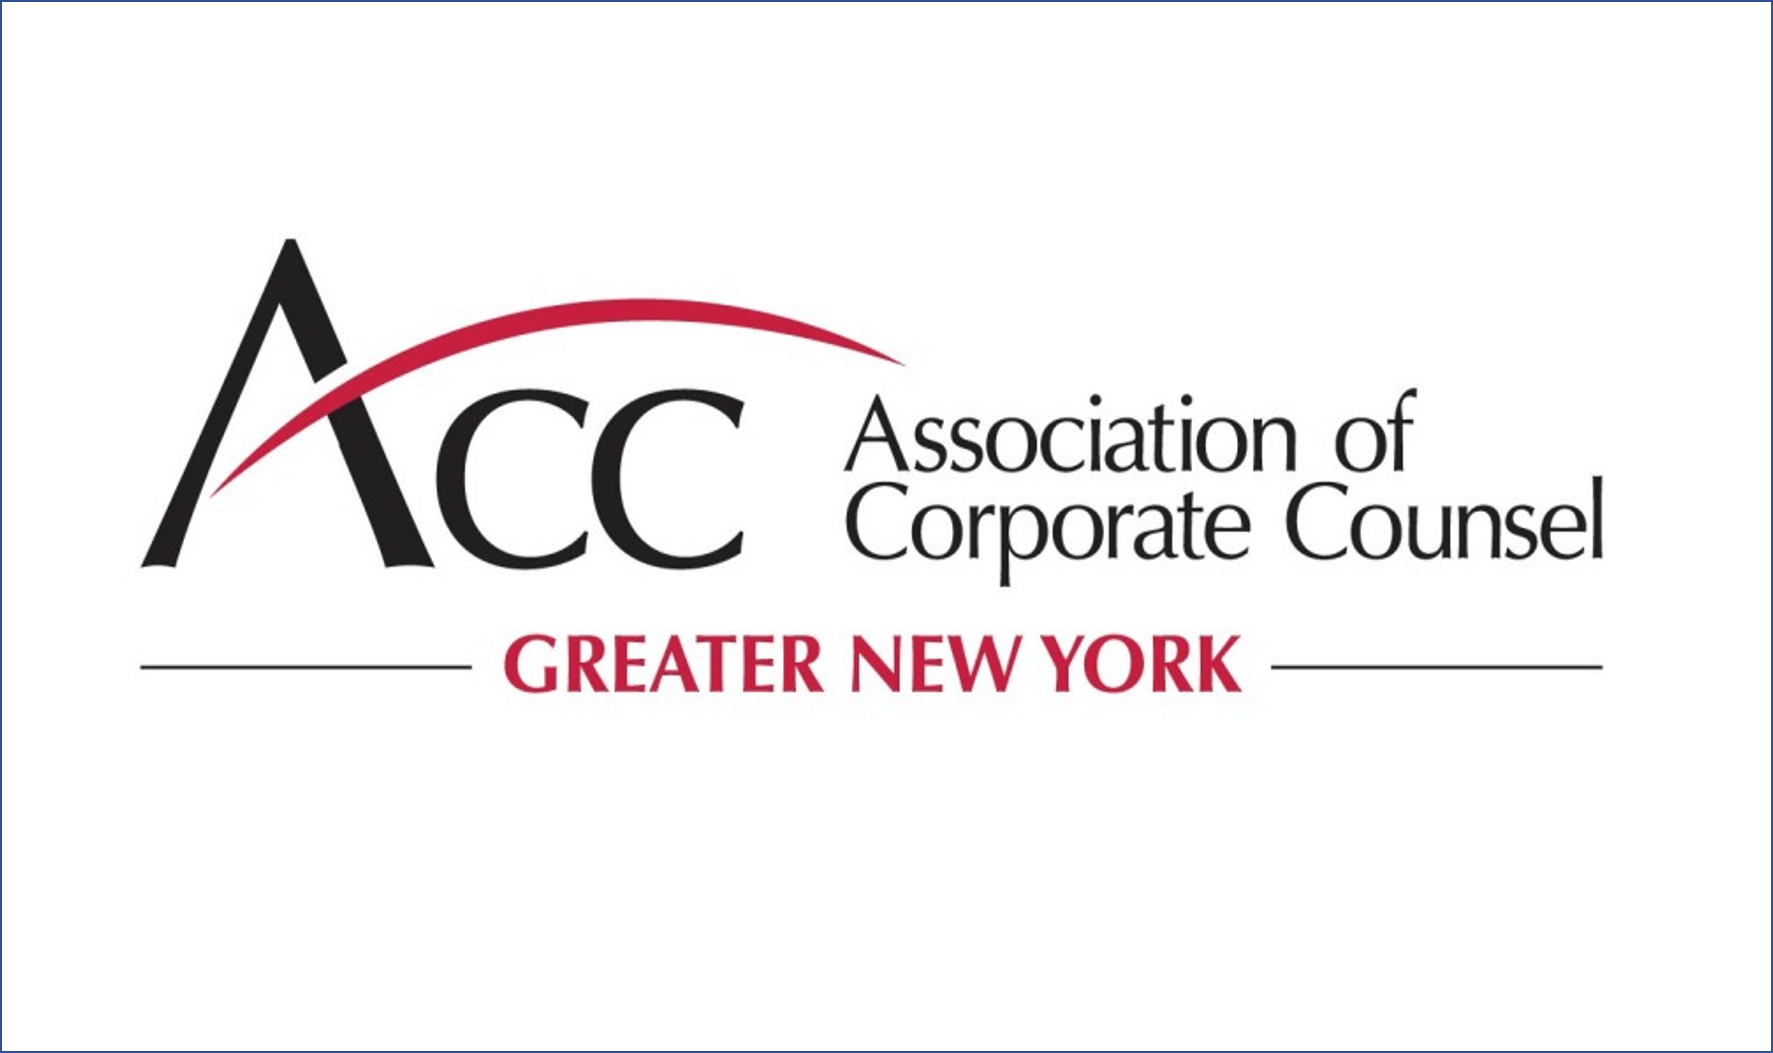 Association of Corporate Counsel Greater New York Logo